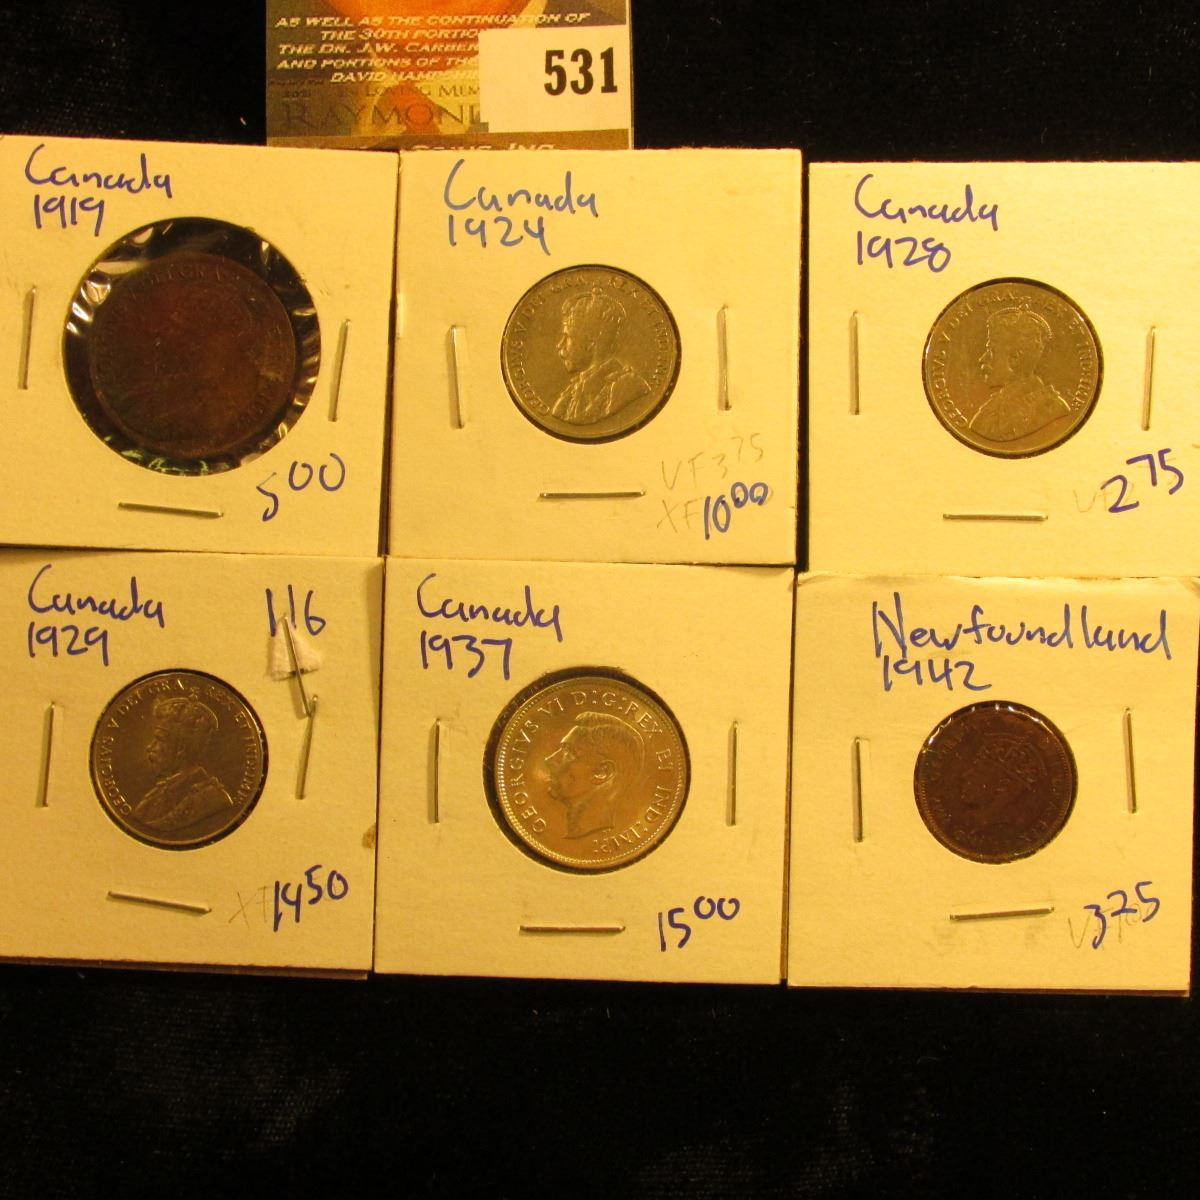 Canadian Coin Lot Includes A 1942 Newfoundland Penny, 1924 Canadian Nickel,  1928 Nickel, 1937 Quarte